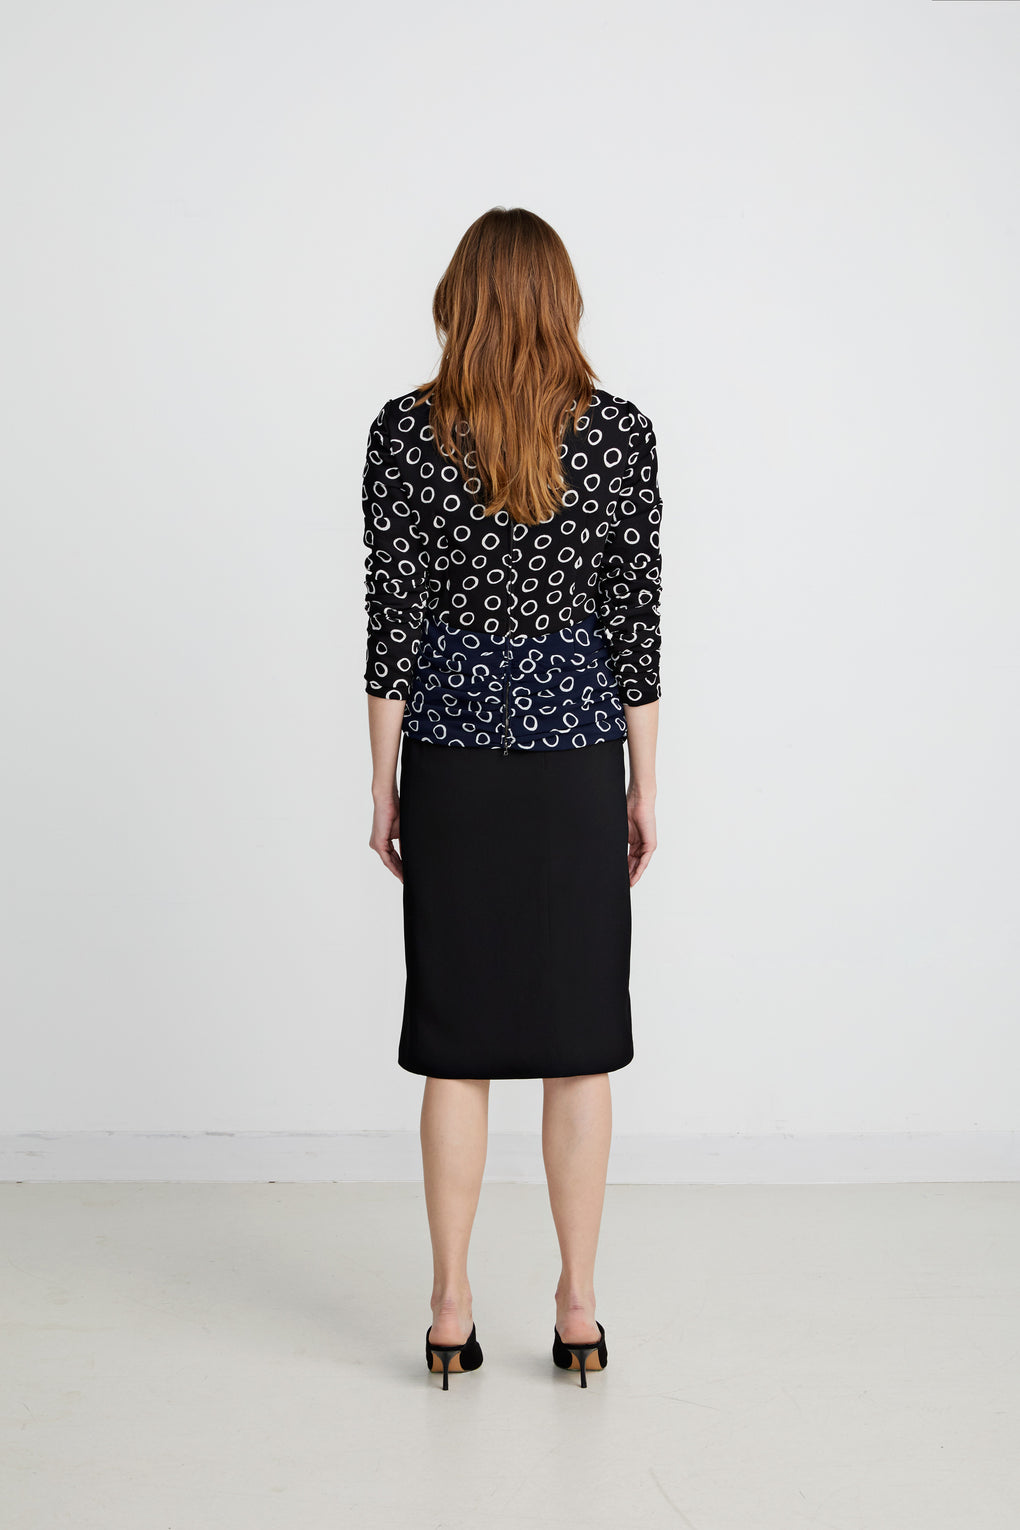 Ruched Blouse - SHOPNECESSARY6.0